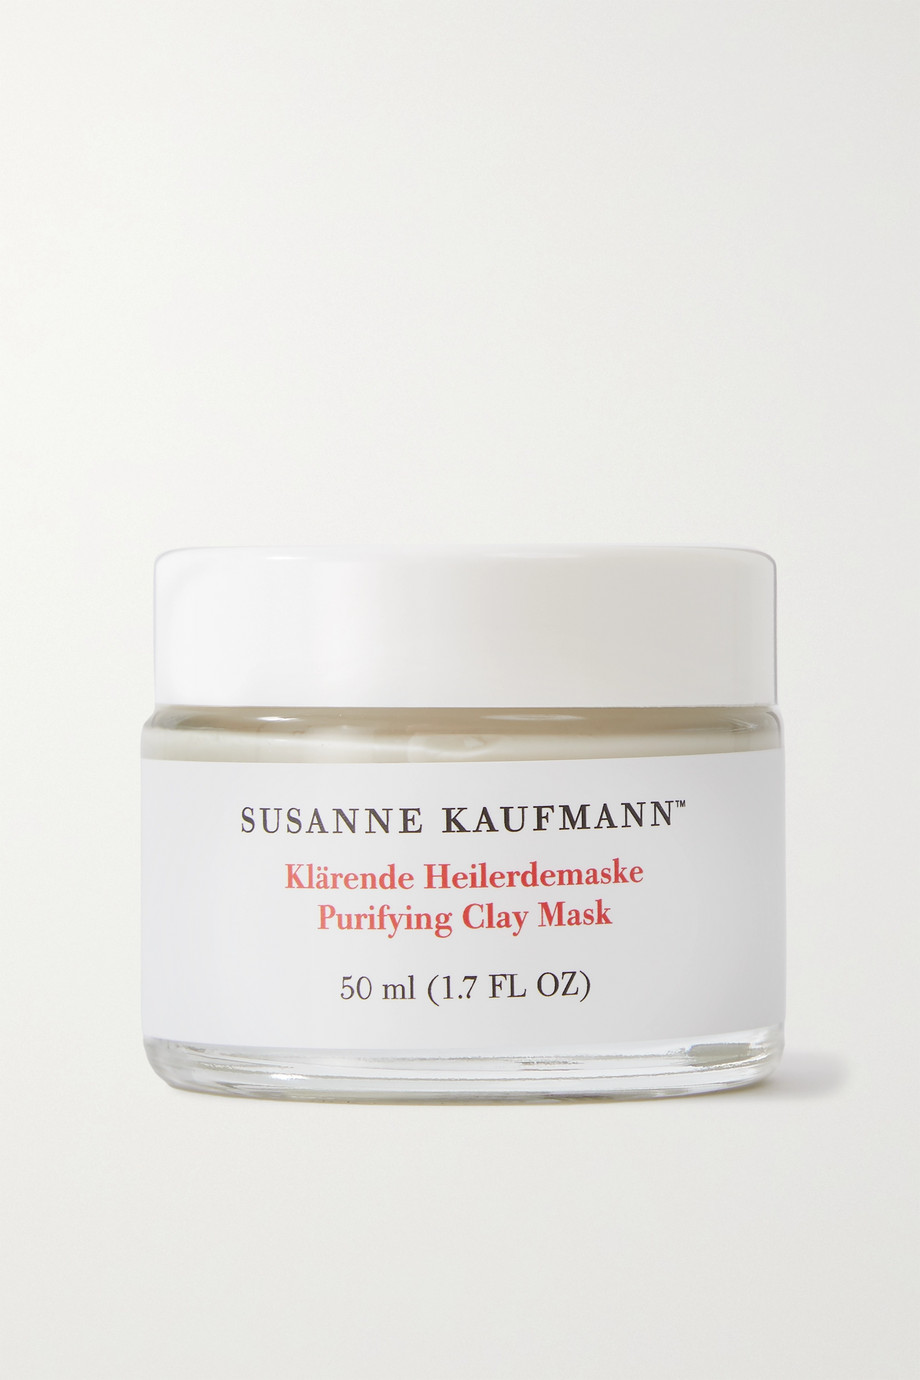 Susanne Kaufmann Healing Earth Mask, 50ml